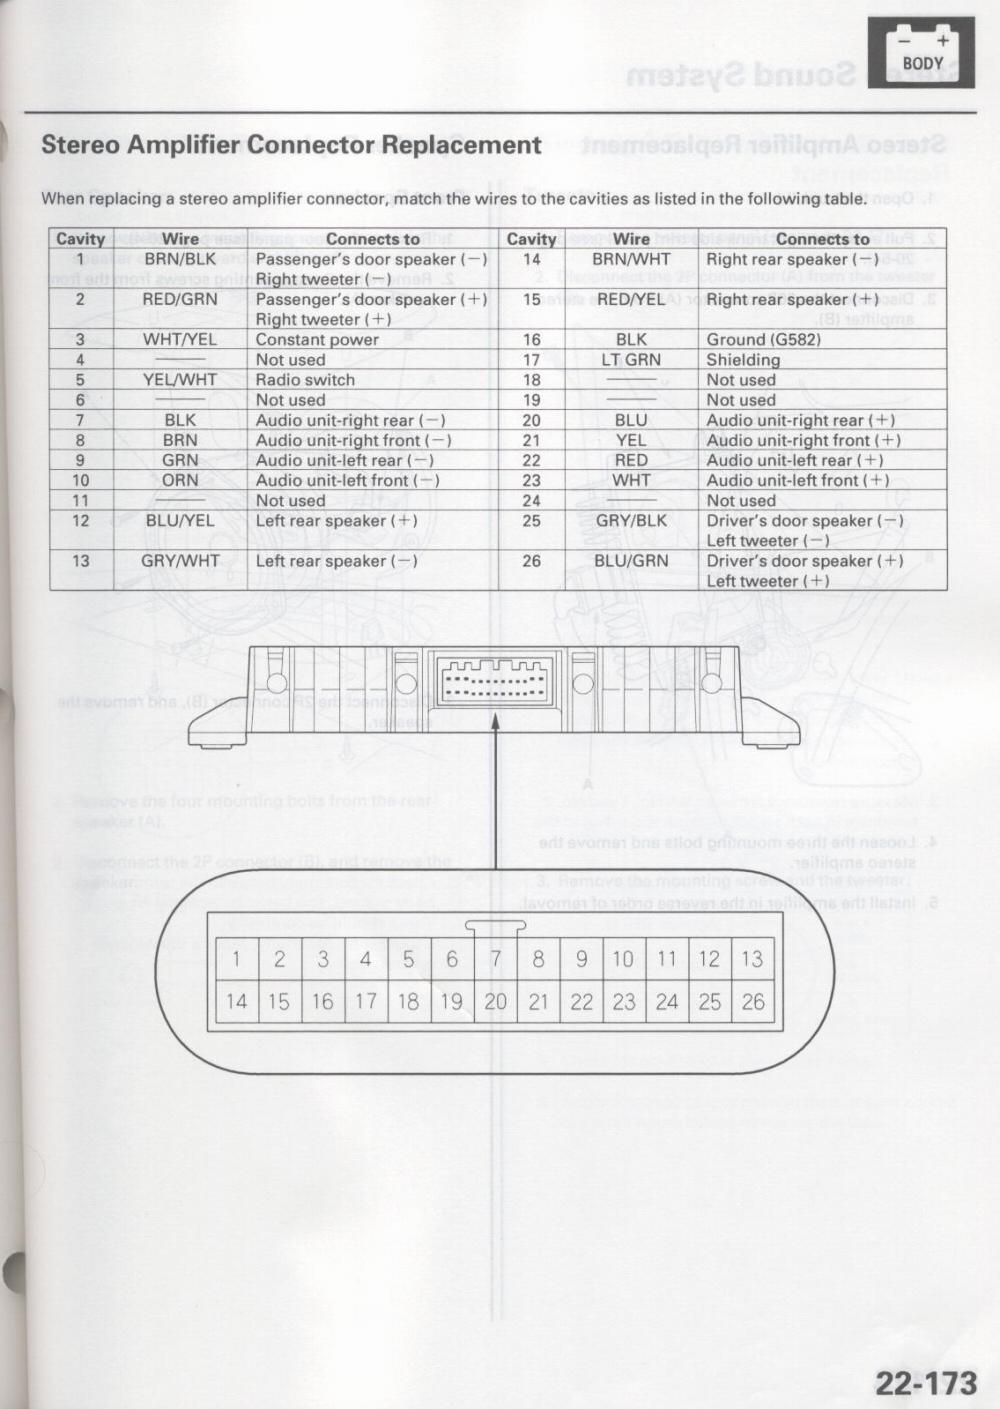 Acura 2002 TL car stereo amplifier wiring diagram harness car radio stereo audio wiring diagram autoradio connector wire Acura MDX Rear Knuckle at n-0.co